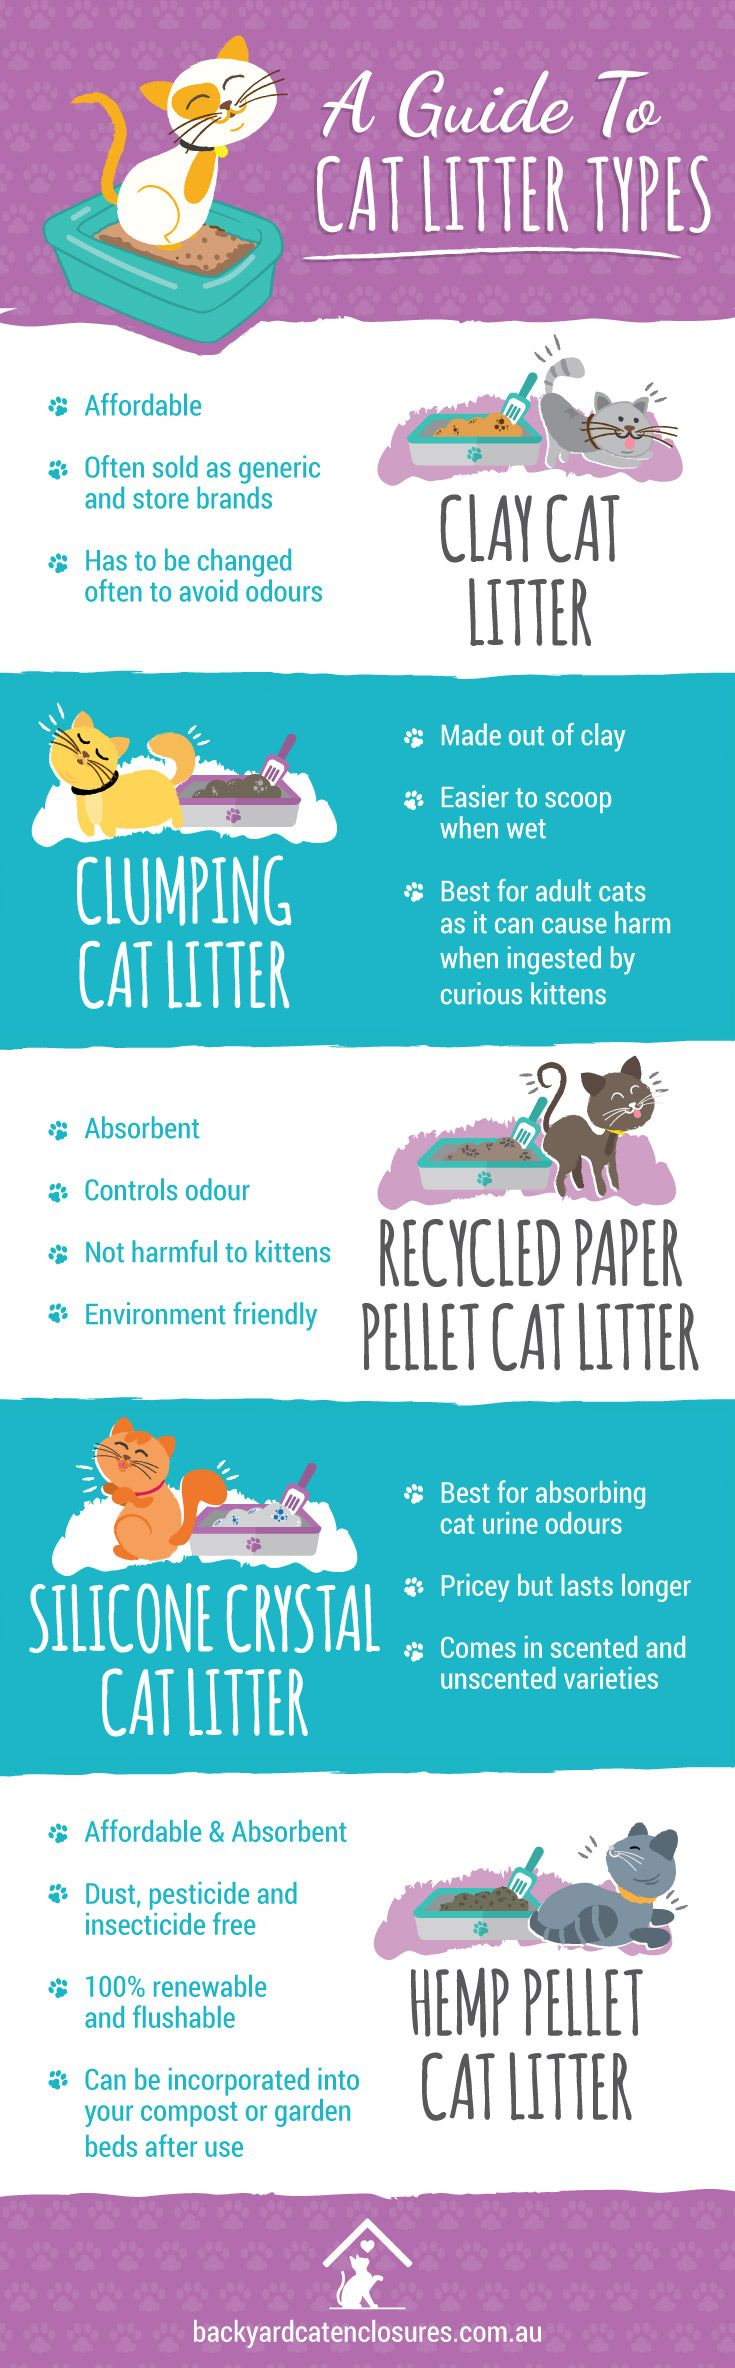 When you are deciding what kitty litter to use in your cat litter box it is a good idea to try a few different litters to figure out your moggy master or mistress's Poop Preference. Click this infographic to find out more. #cathealth #catlittertypes #catlitter